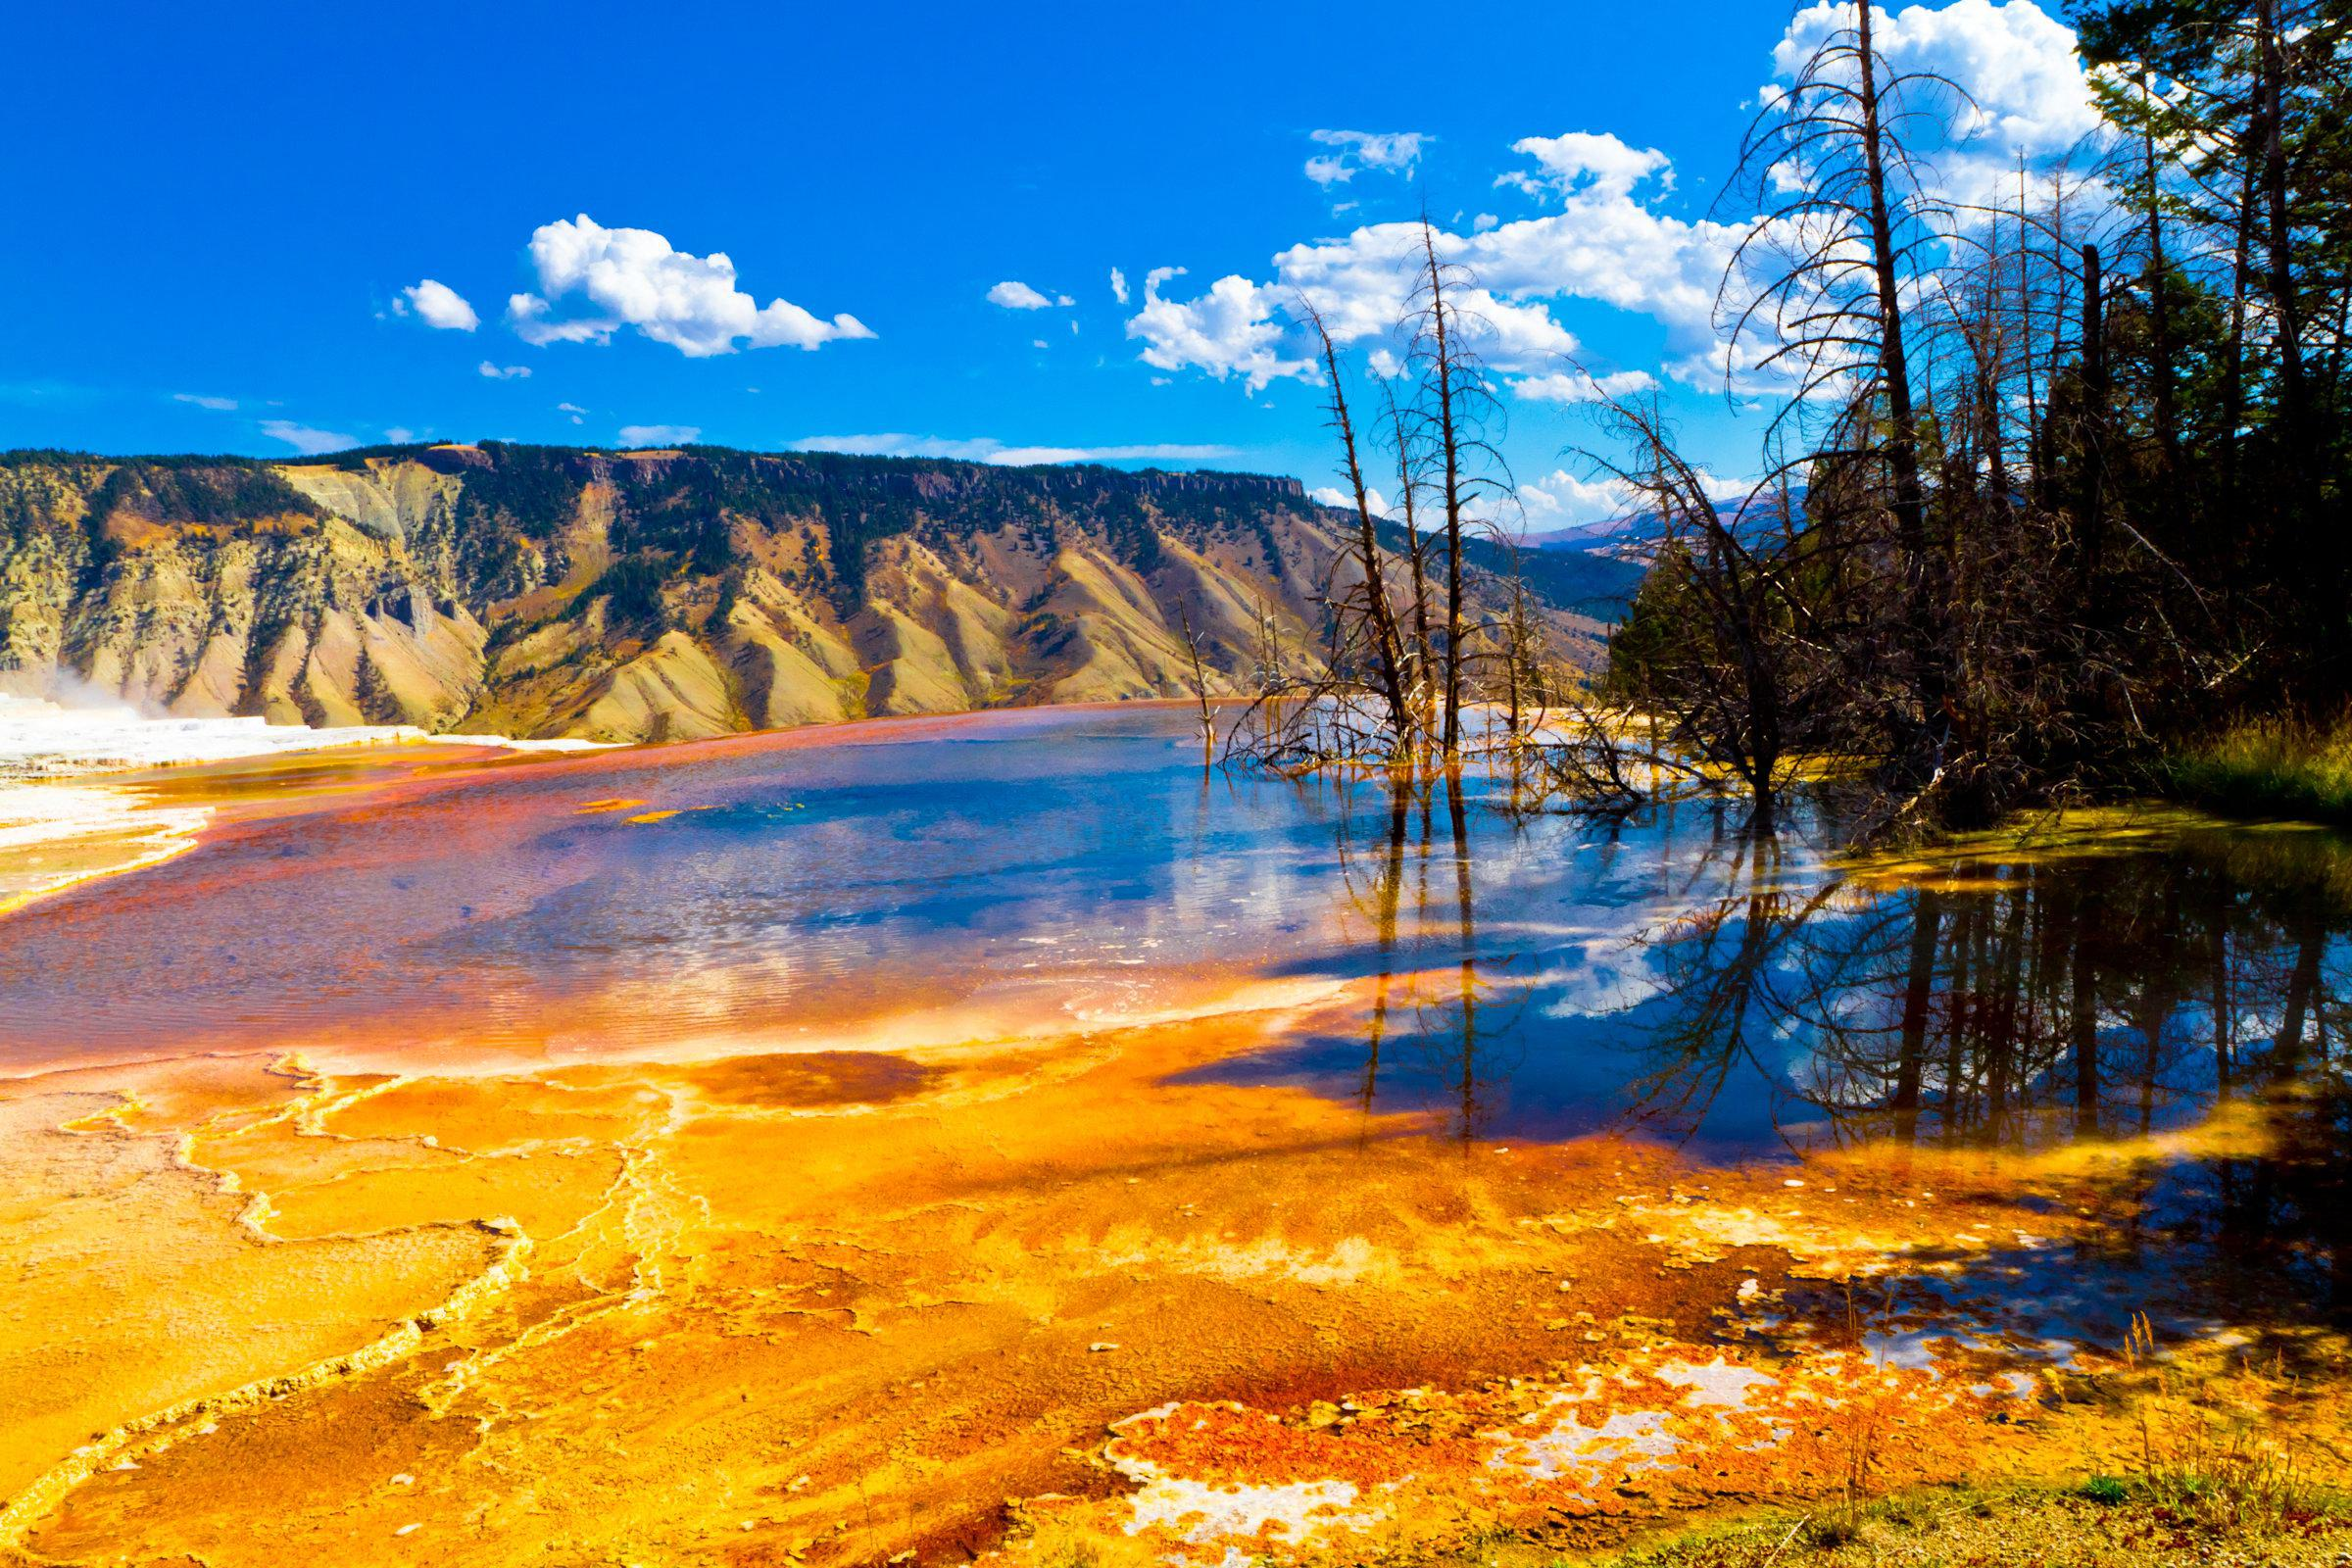 Yellowstone national park   119589   High Quality and Resolution 2400x1600